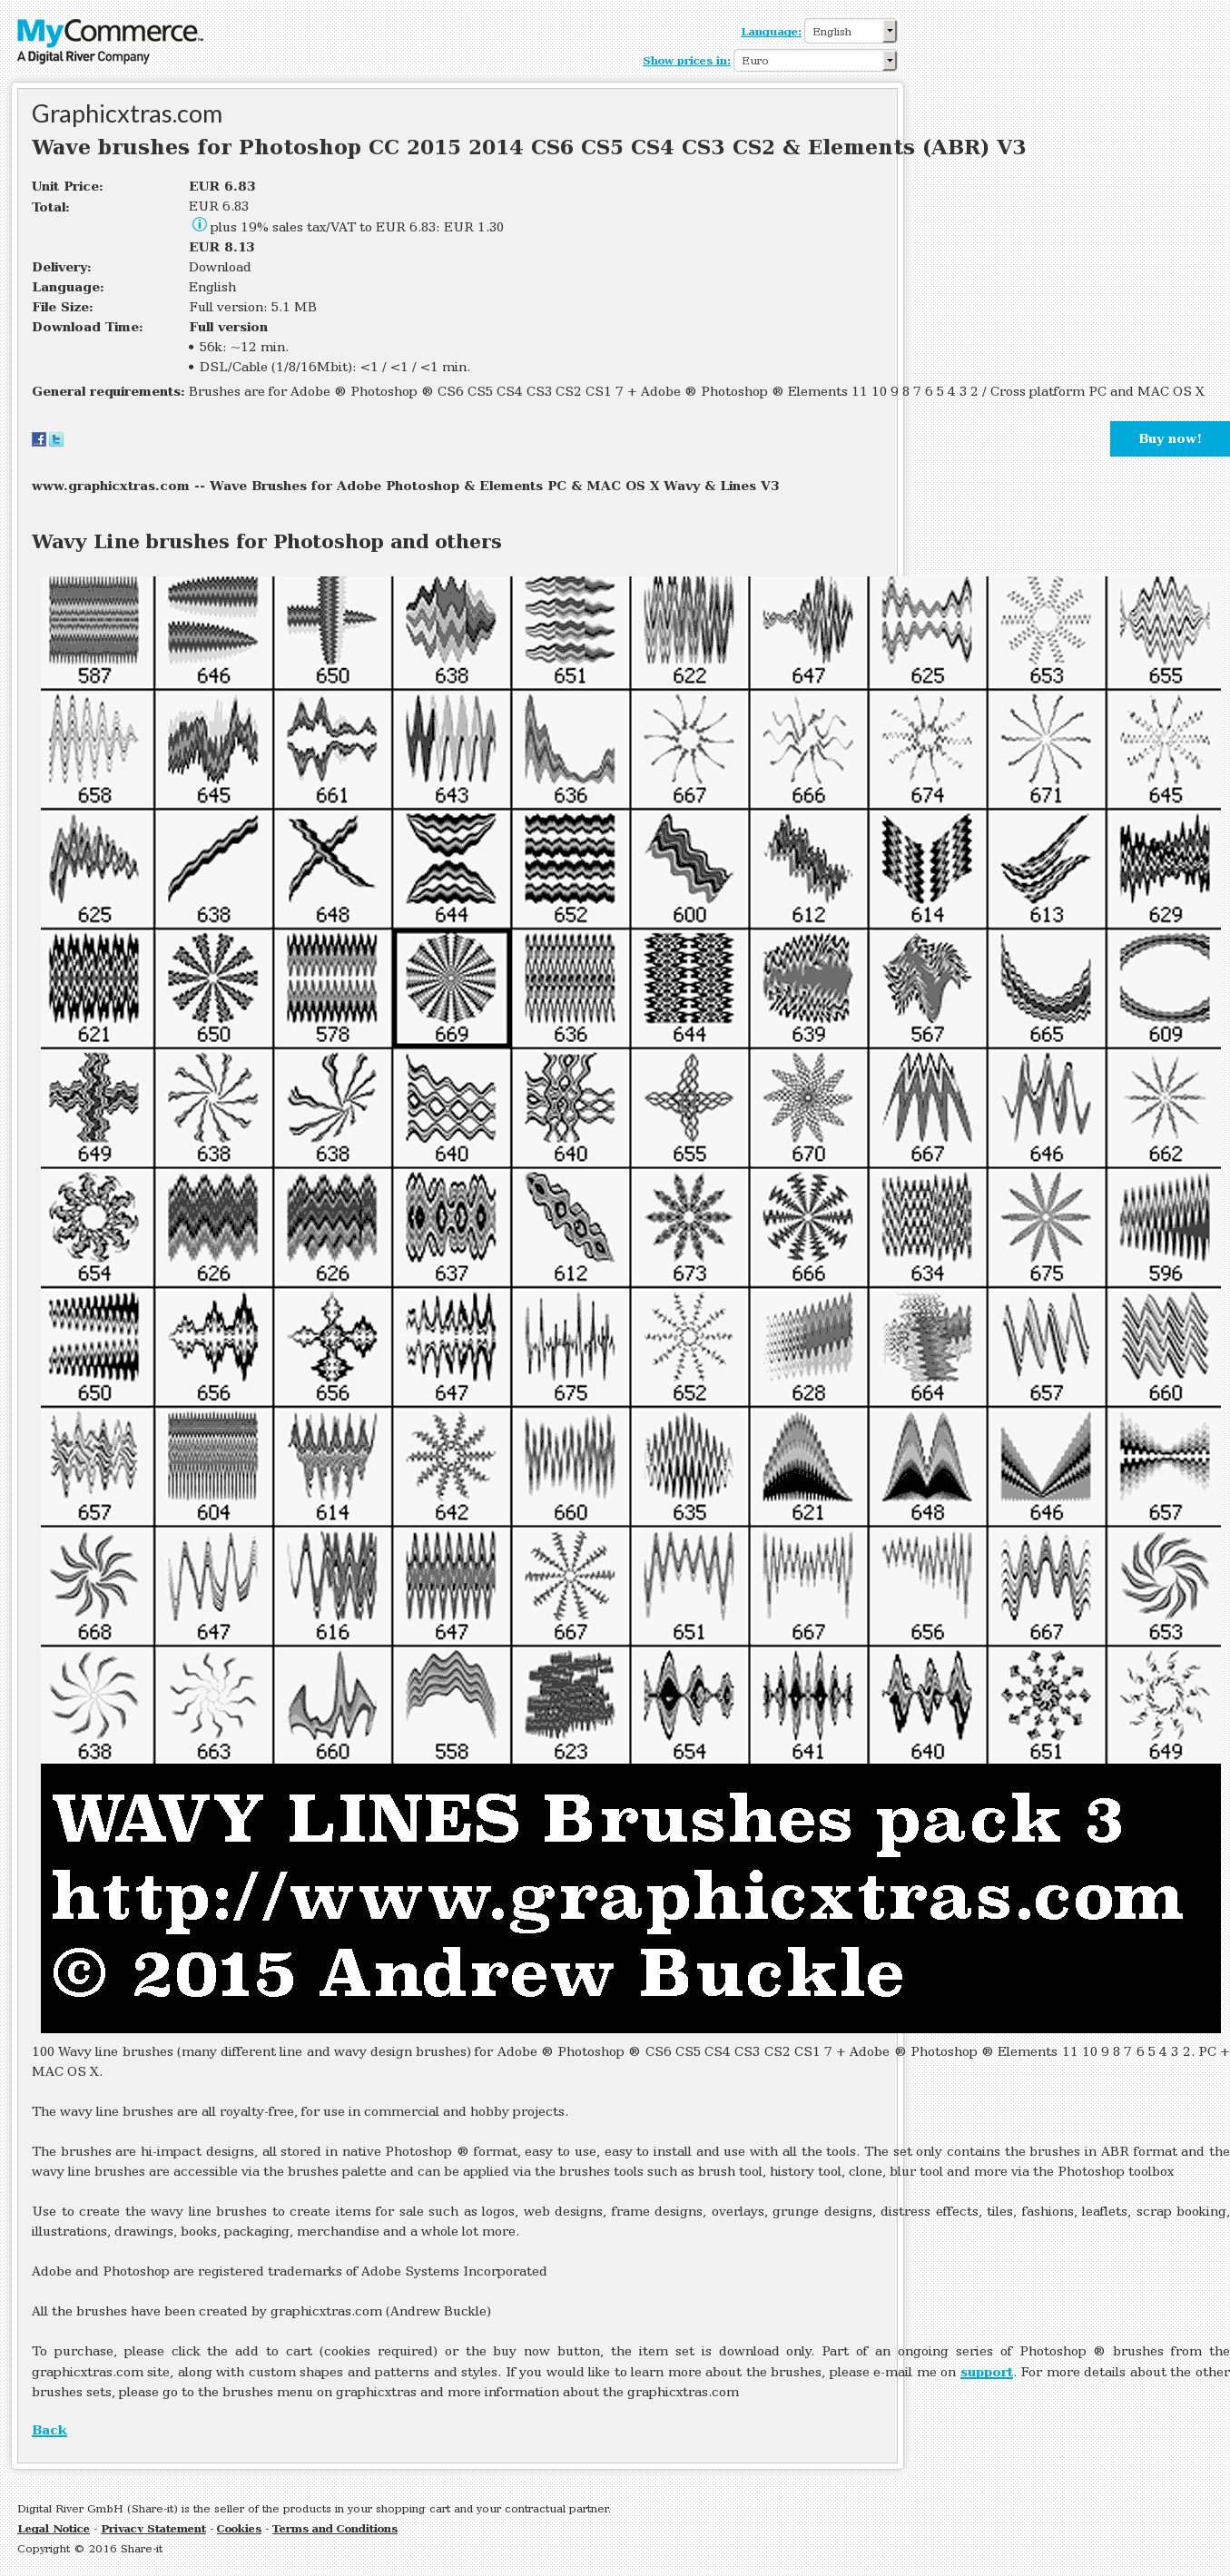 Wave Brushes Photoshop Elements Abr Download